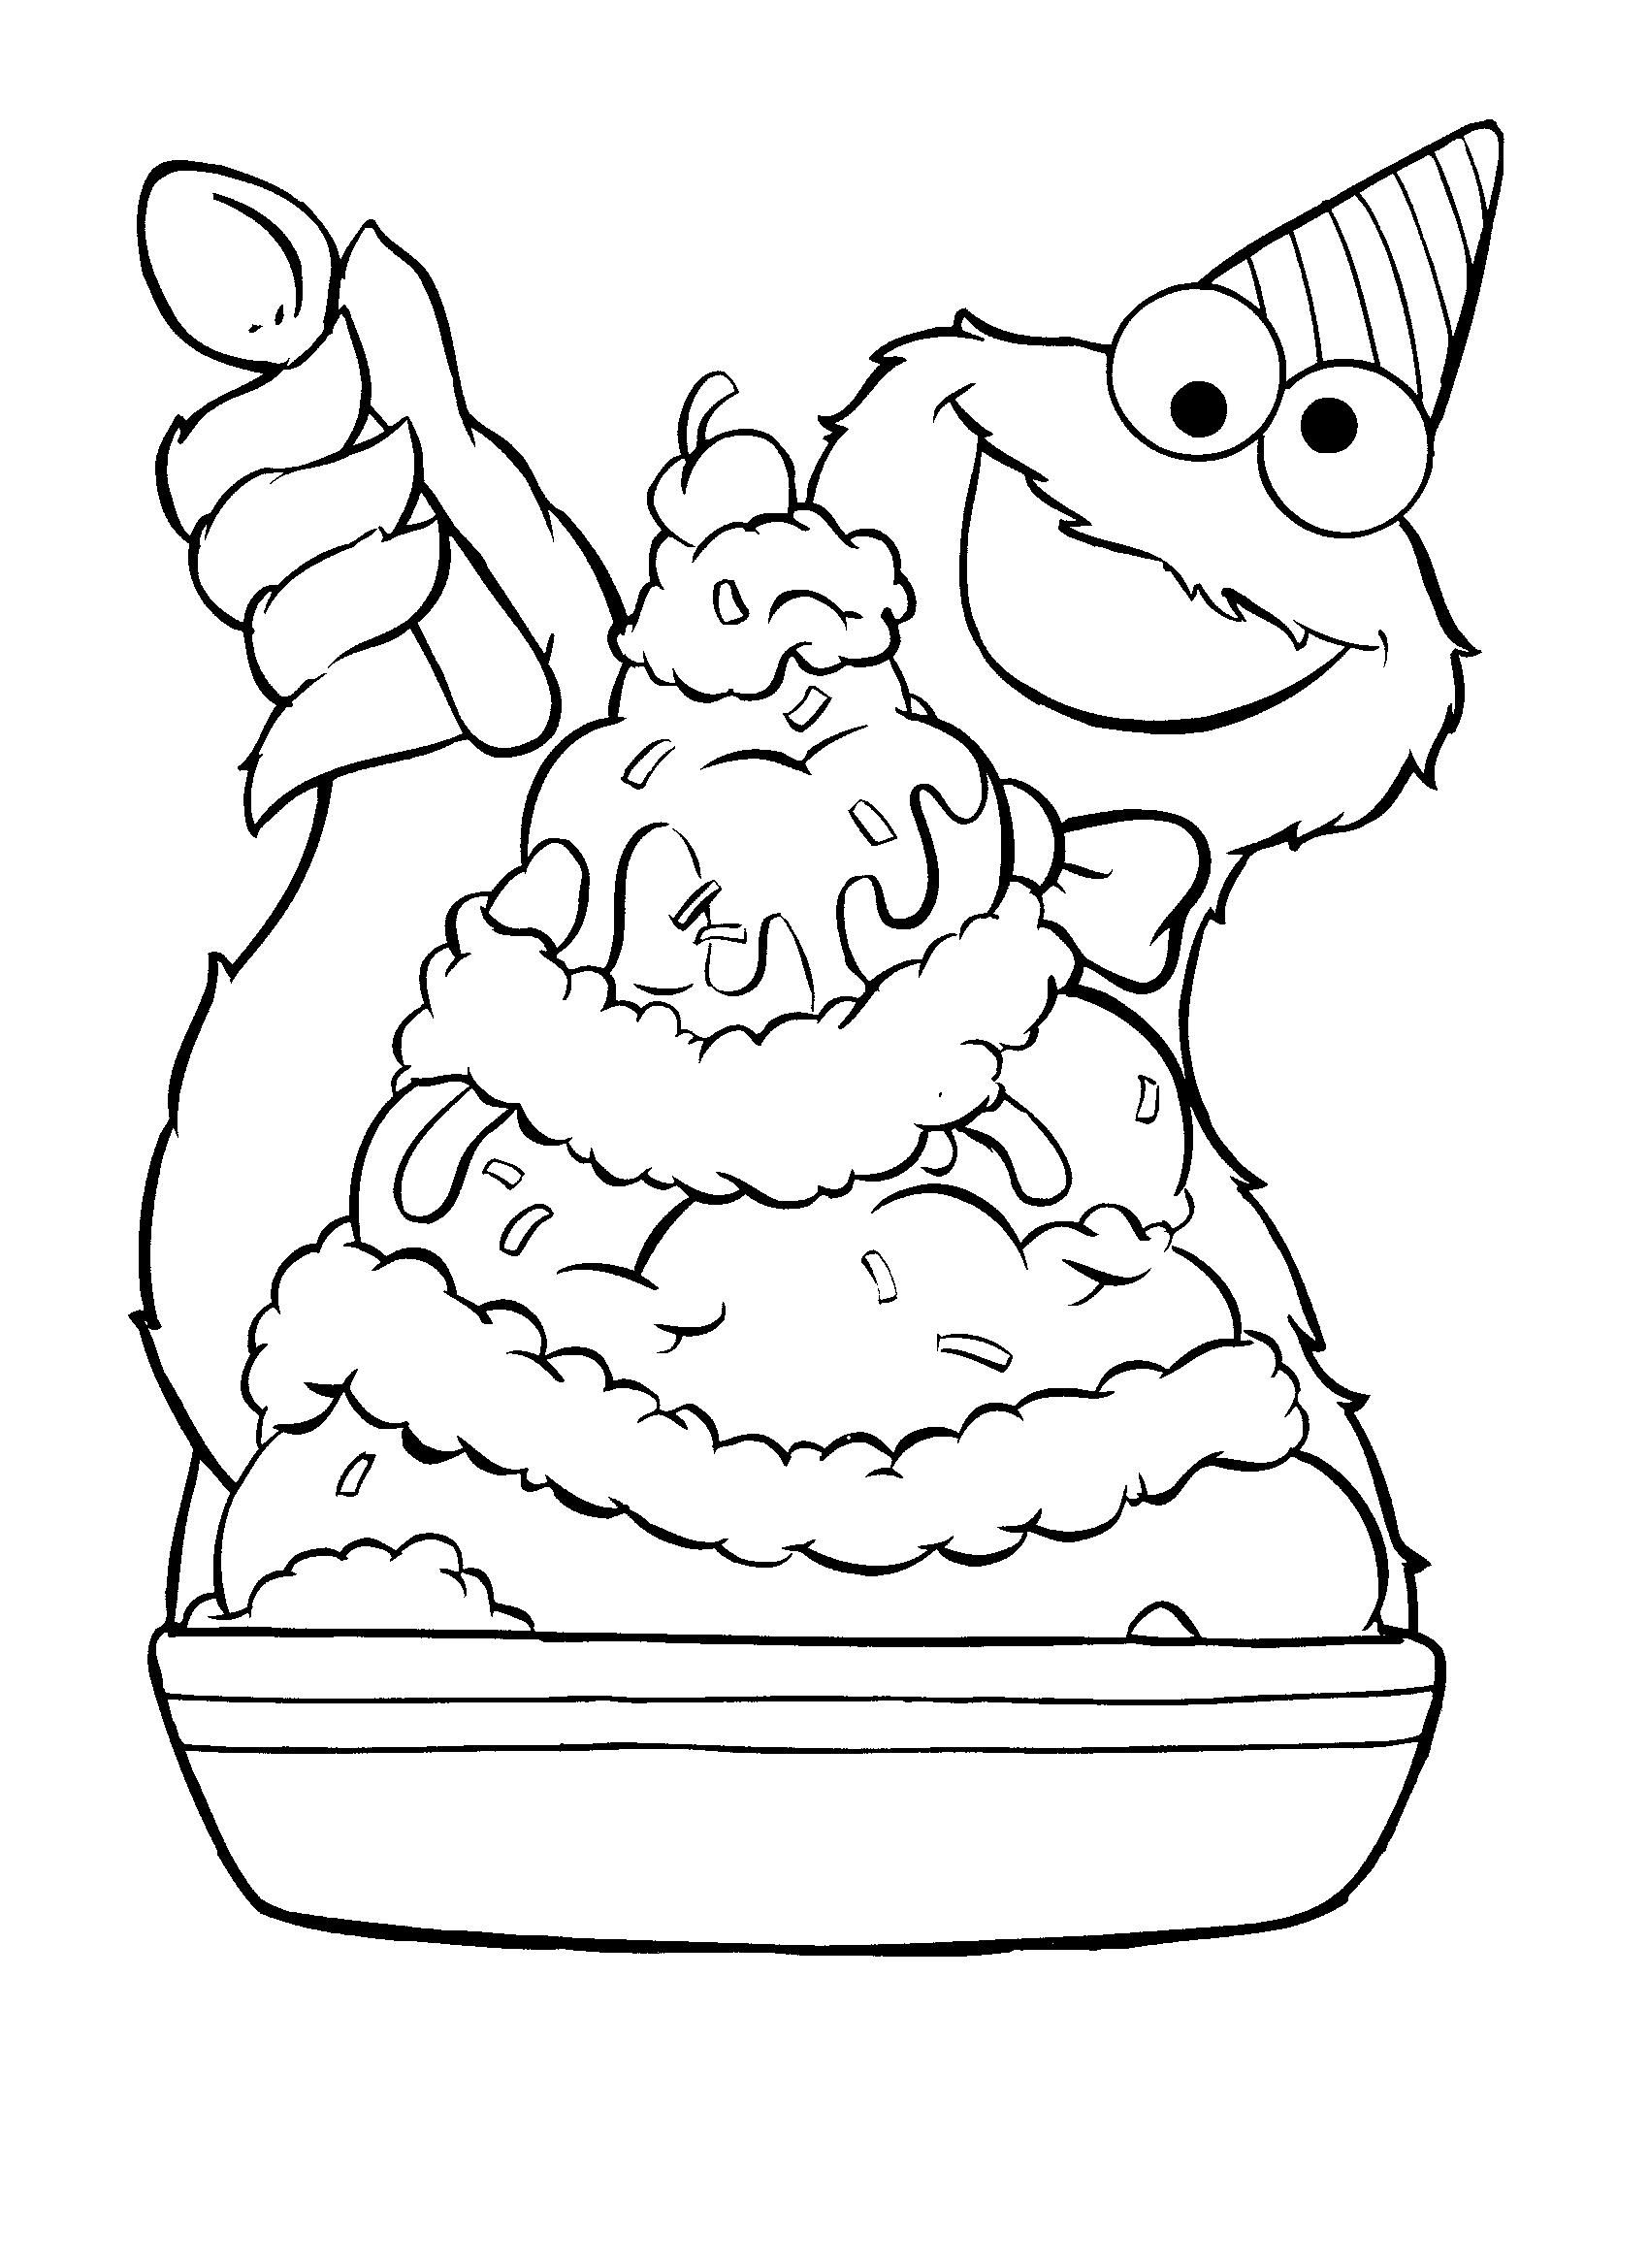 Cookie monster ice cream sundae coloring pages for Cookie monster coloring pages printable